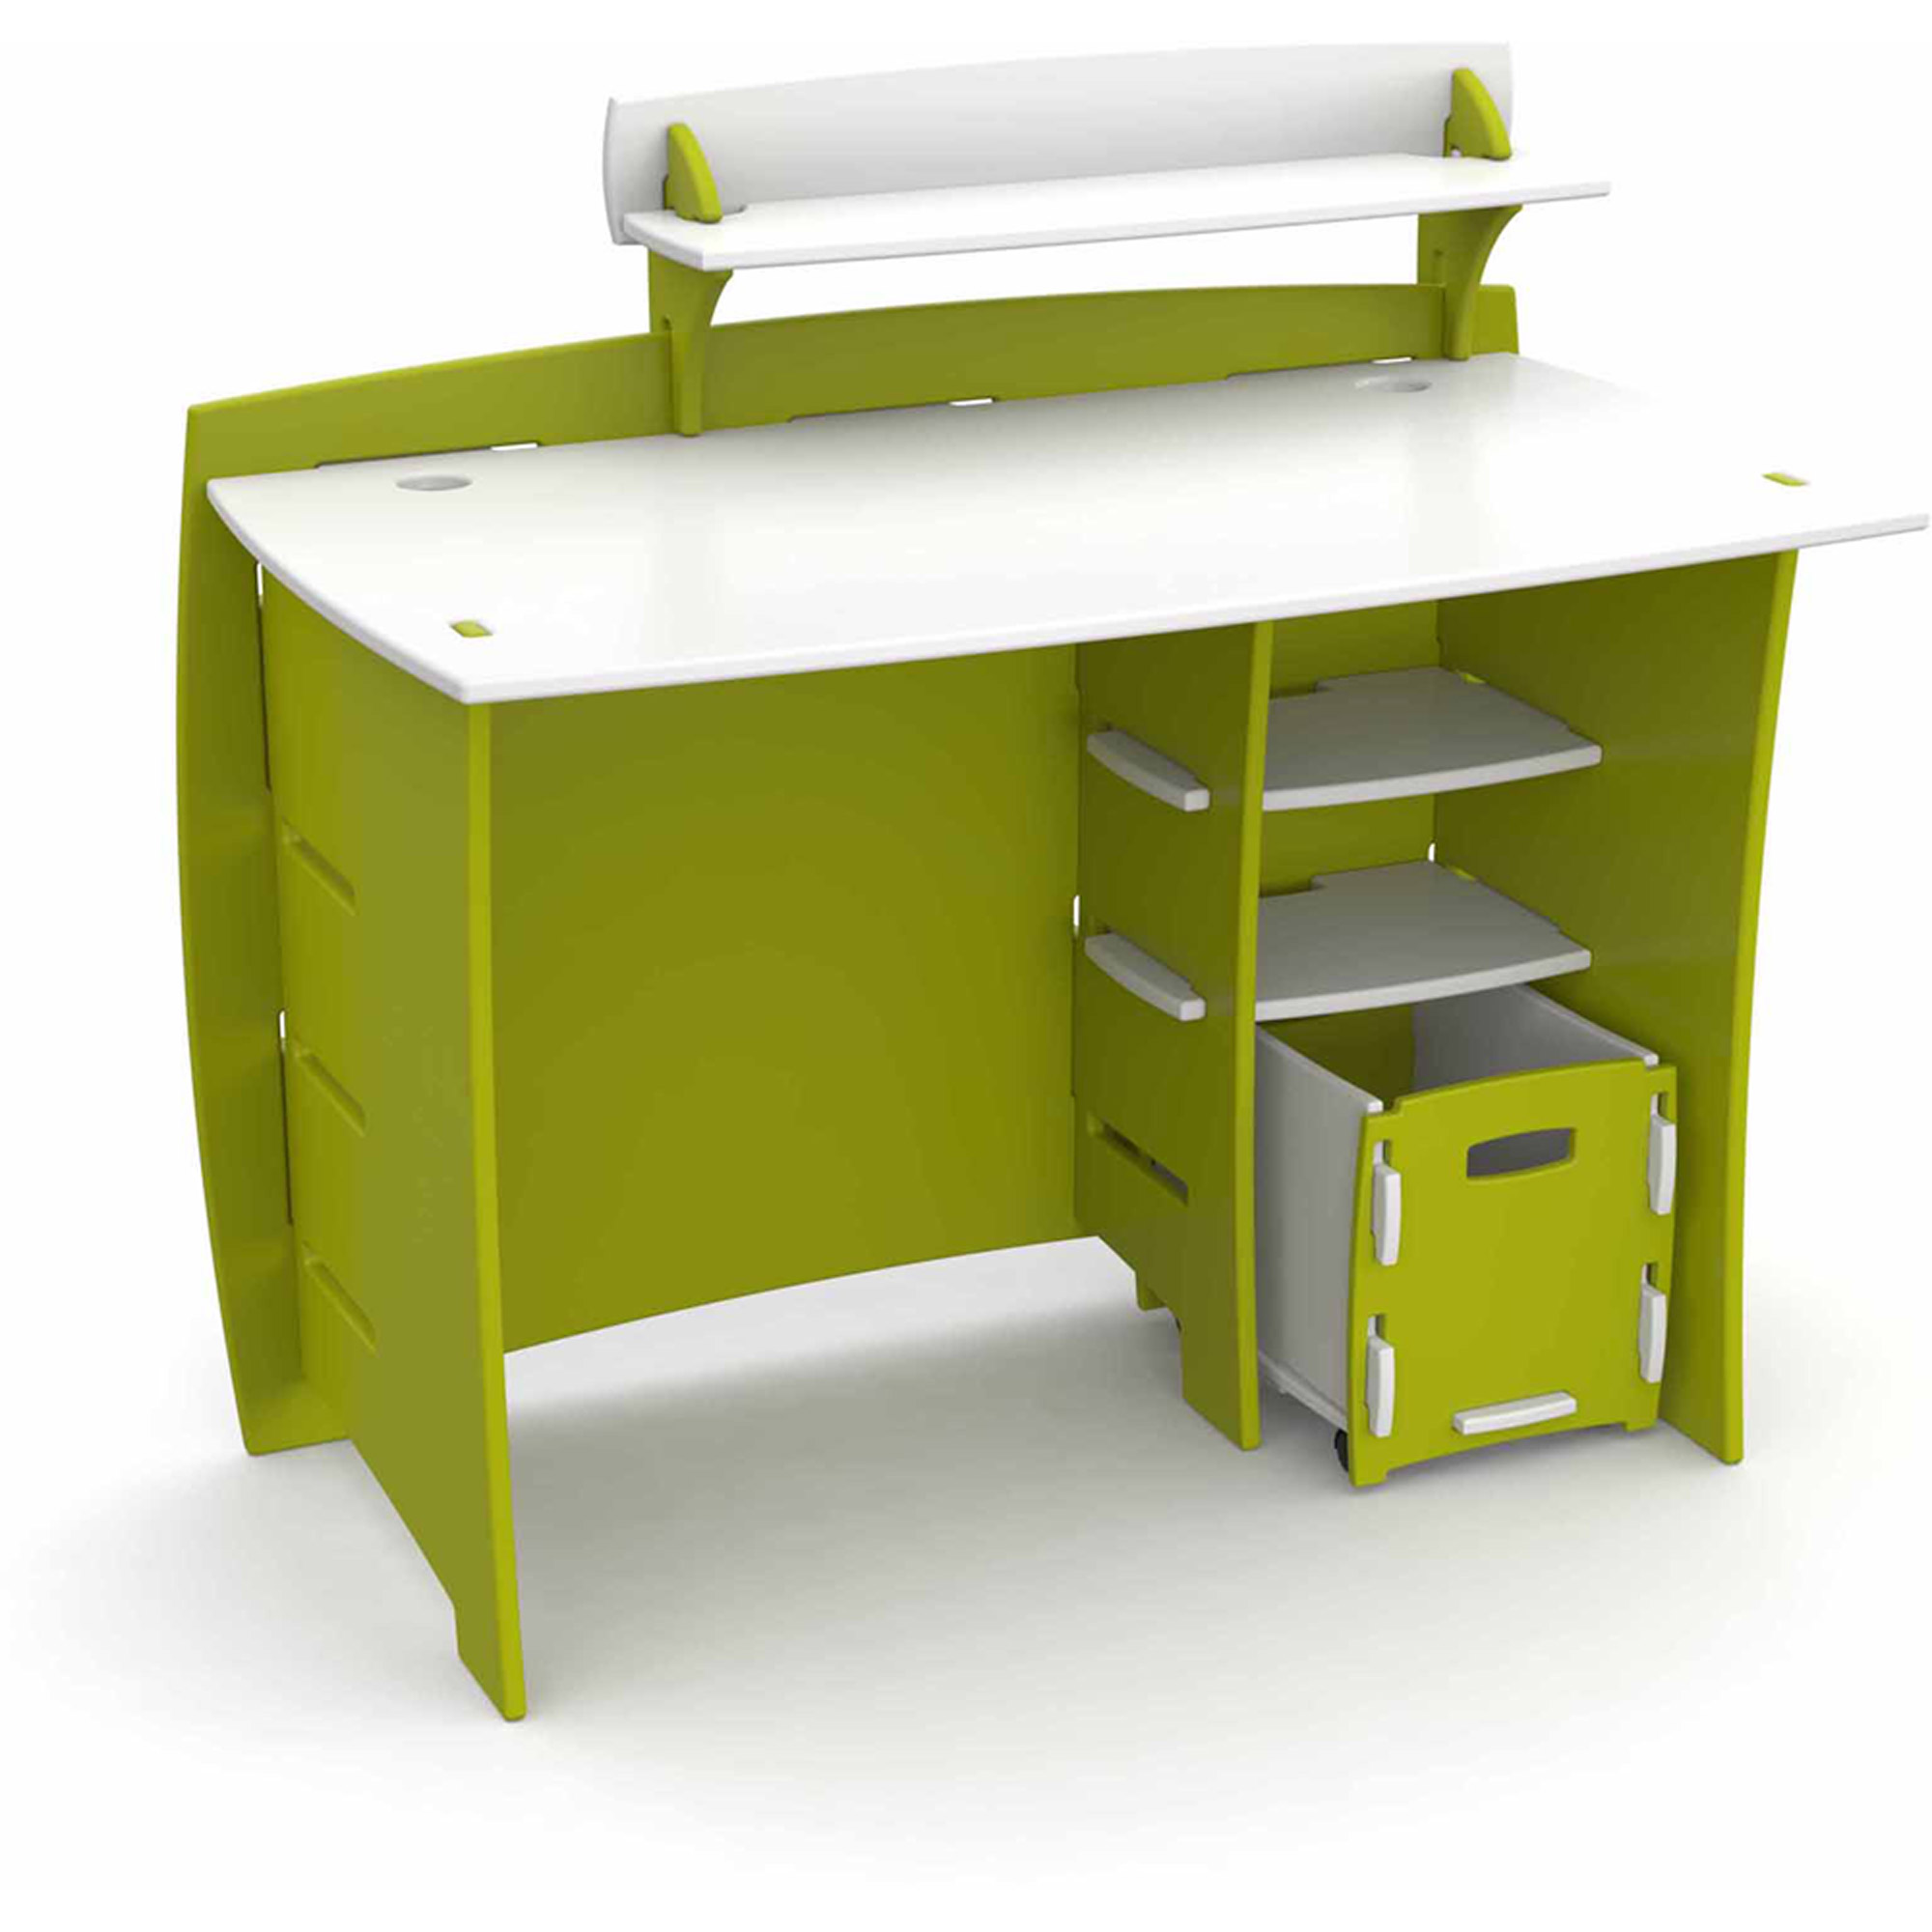 Legare Kids Furniture Frog Series Collection Complete Desk System Set, Lime Green and White